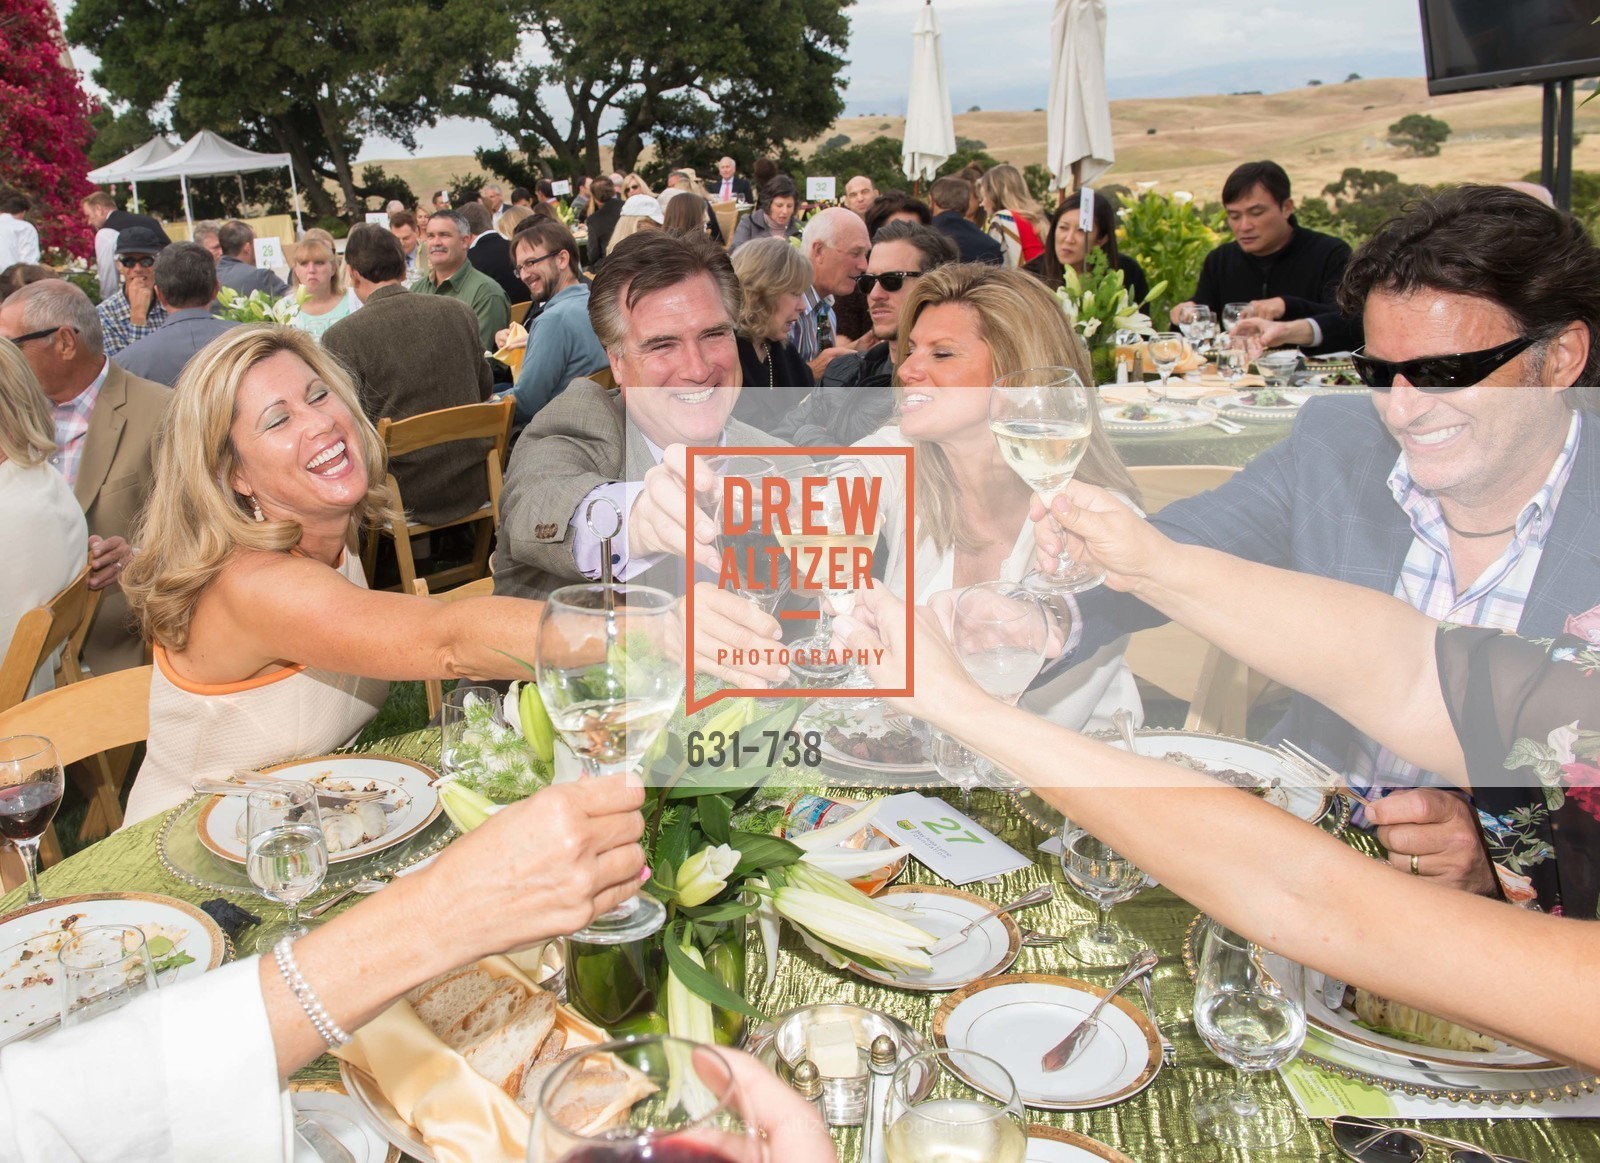 Lucy Kuchan, Joe Nemeth, Vita Strimaitis, Craig Cousins, LymeAid 2015, US, May 18th, 2015,Drew Altizer, Drew Altizer Photography, full-service agency, private events, San Francisco photographer, photographer california